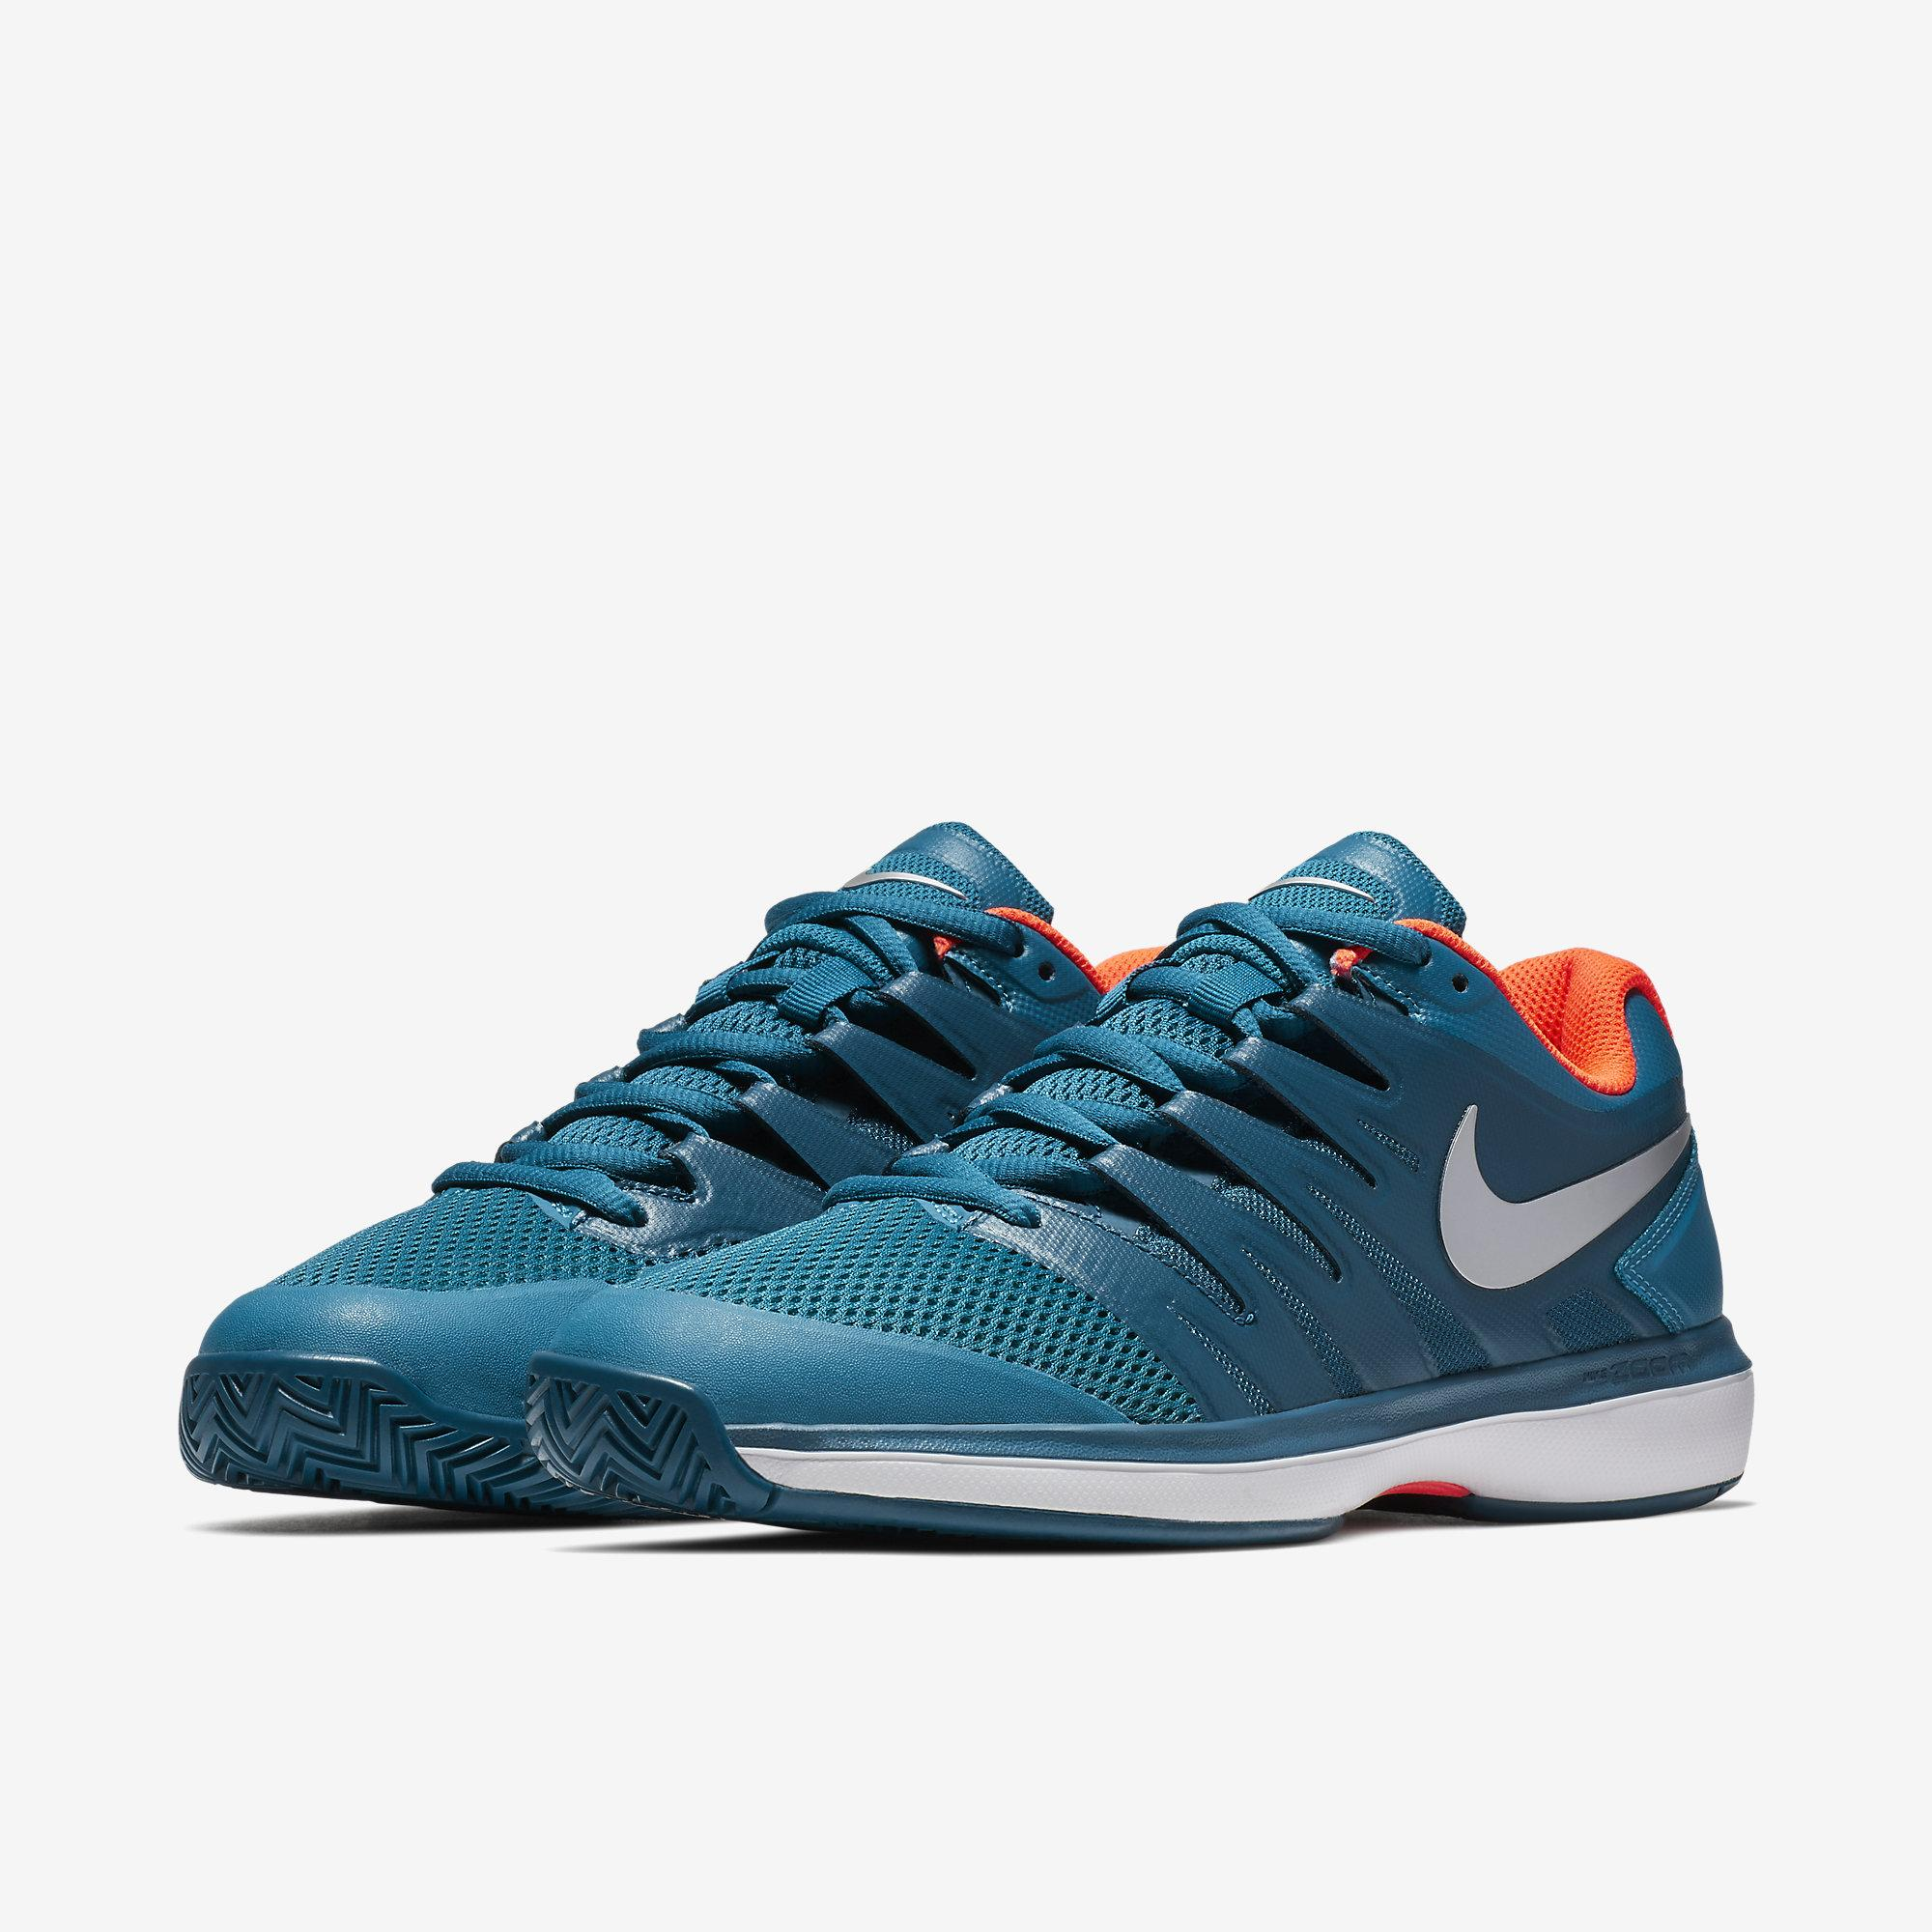 9dc3bff2411e1 Nike Mens Air Zoom Prestige Tennis Shoes - Green Abyss Blue Force ...